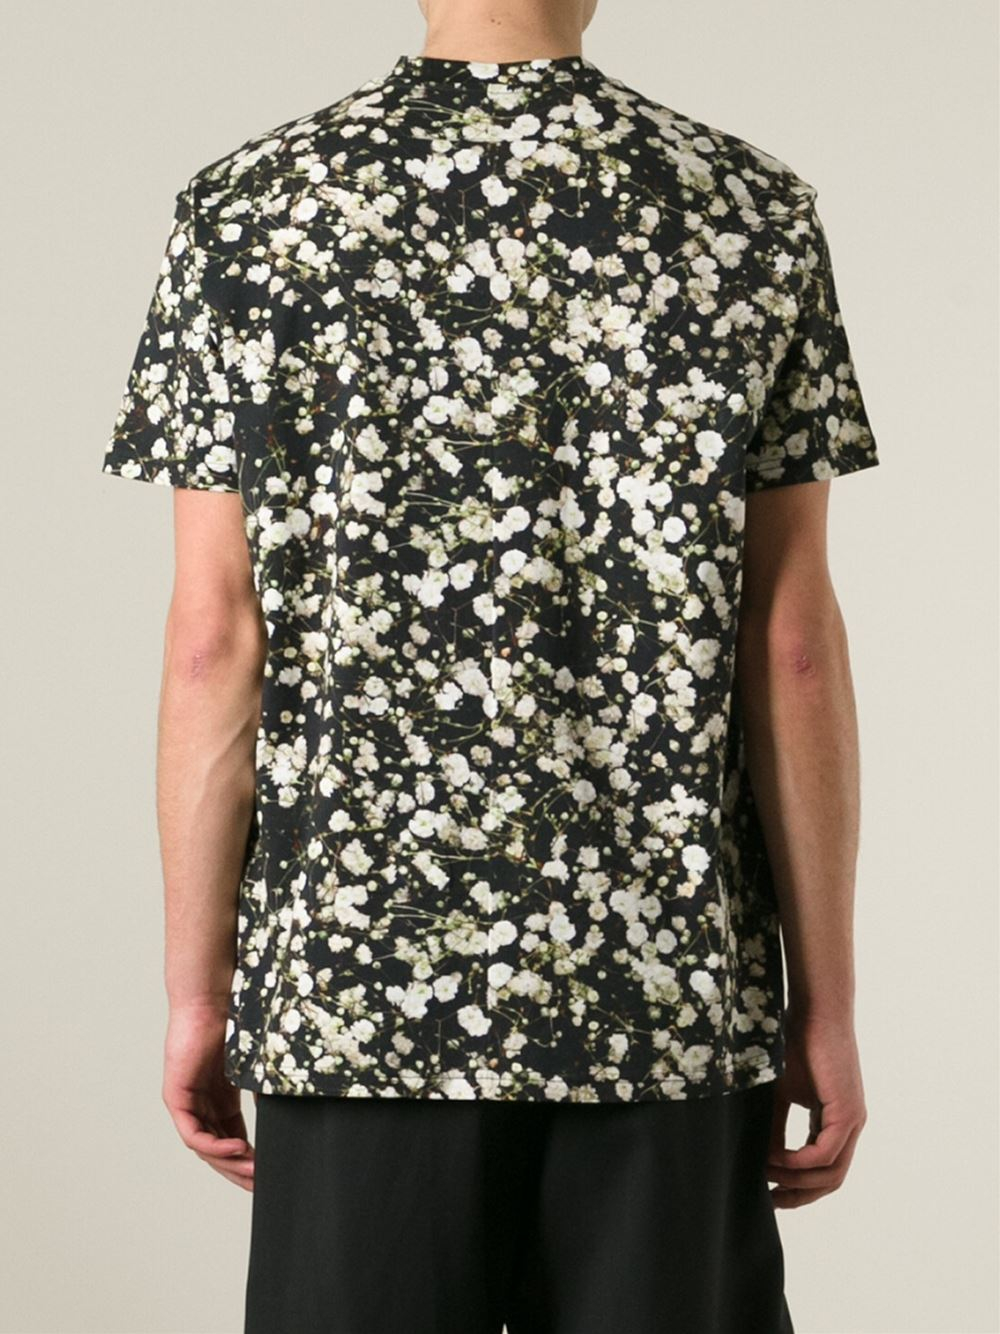 Floral-print Woven Shirt Givenchy Free Shipping Supply Clearance Great Deals Cheapest Online Buy Cheap 100% Authentic awtBwv7